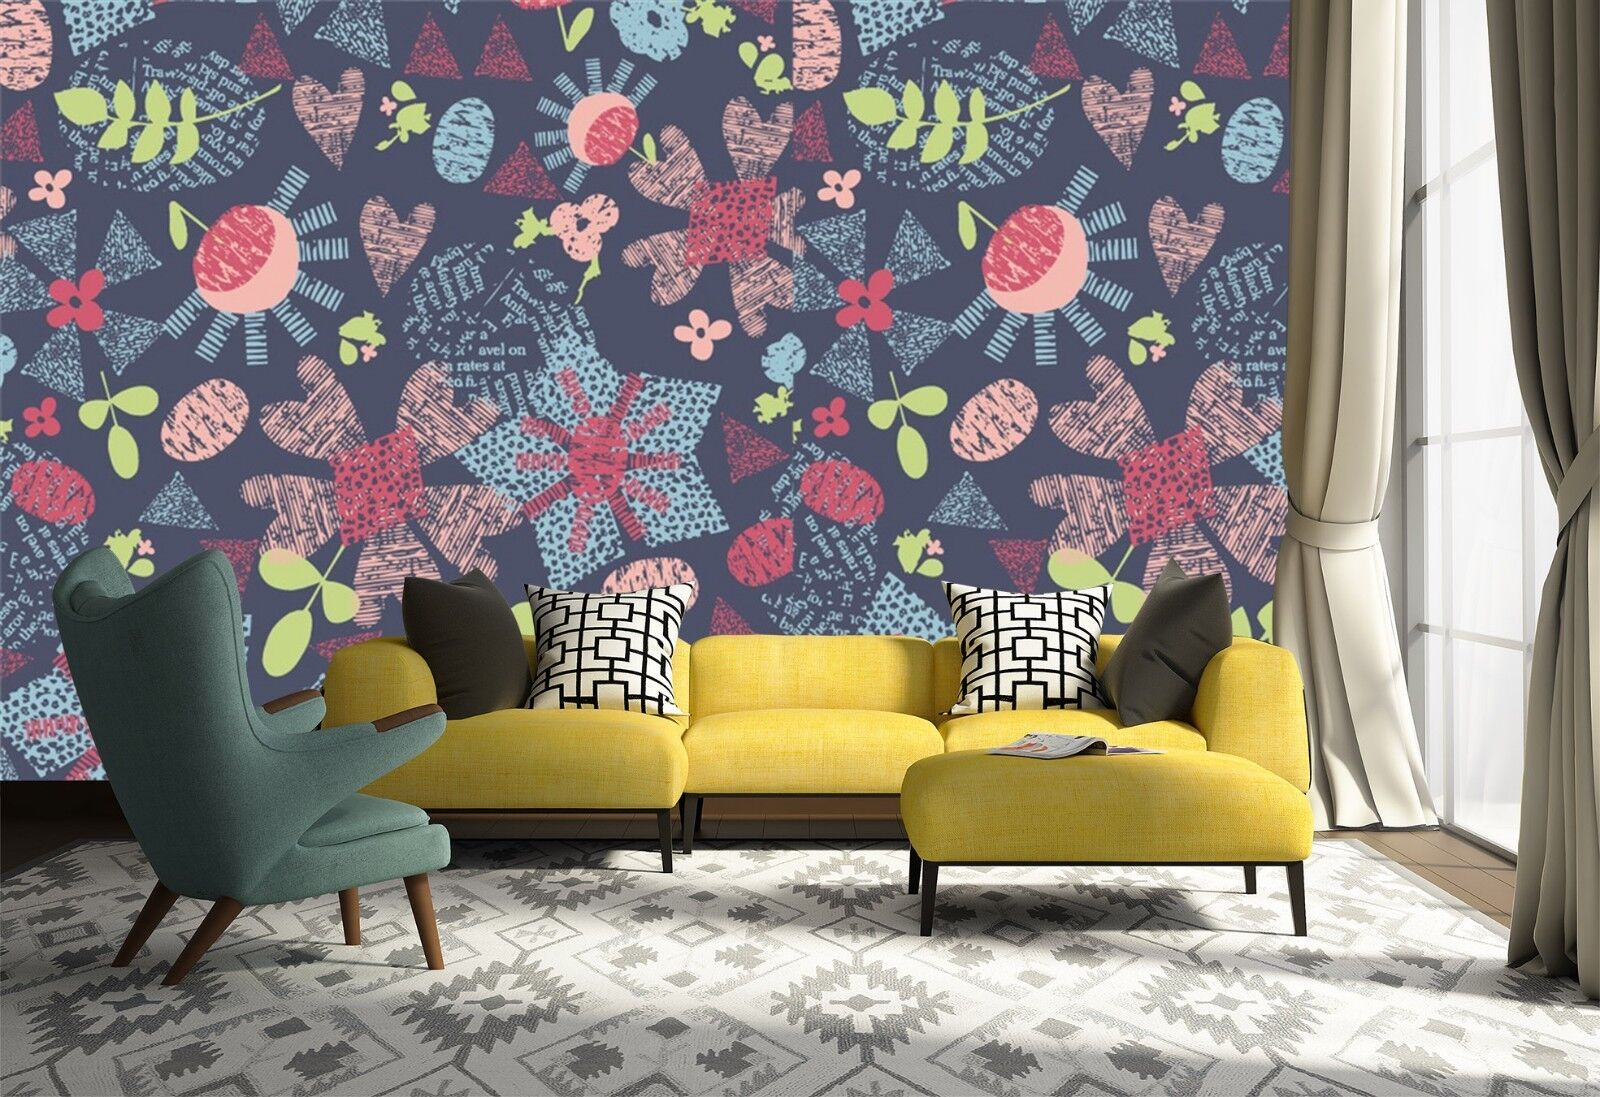 3D 3D 3D Pattern Floral 7010 Wallpaper Mural Wall Print Wall Wallpaper Murals US Lemon 8530ff